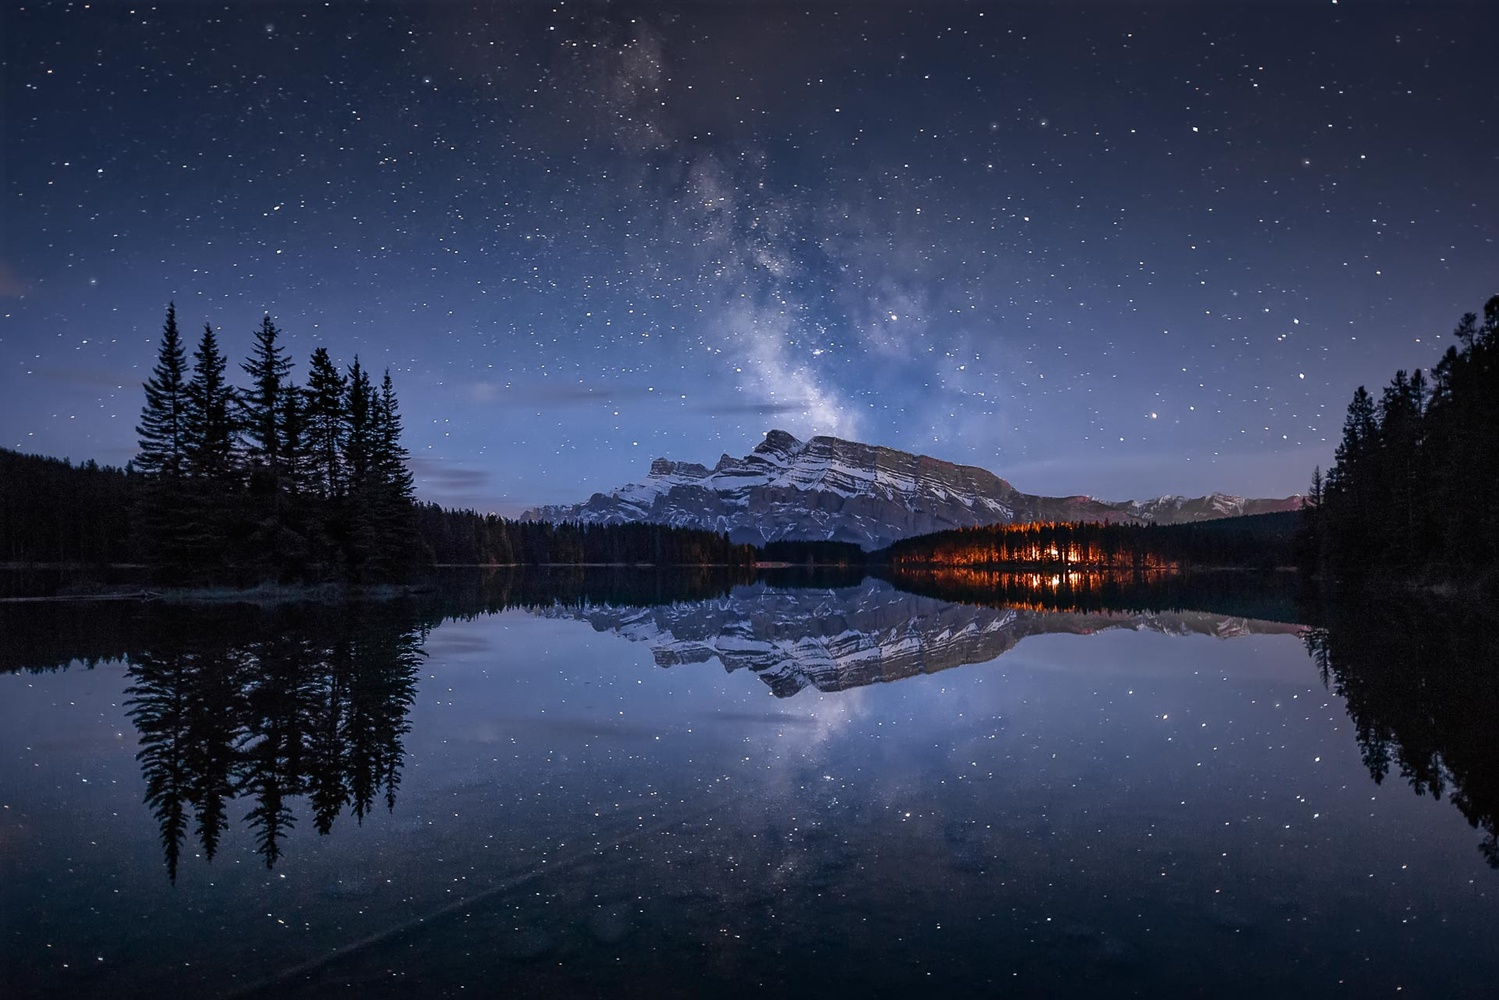 The Sky at your feet by Dan Zafra